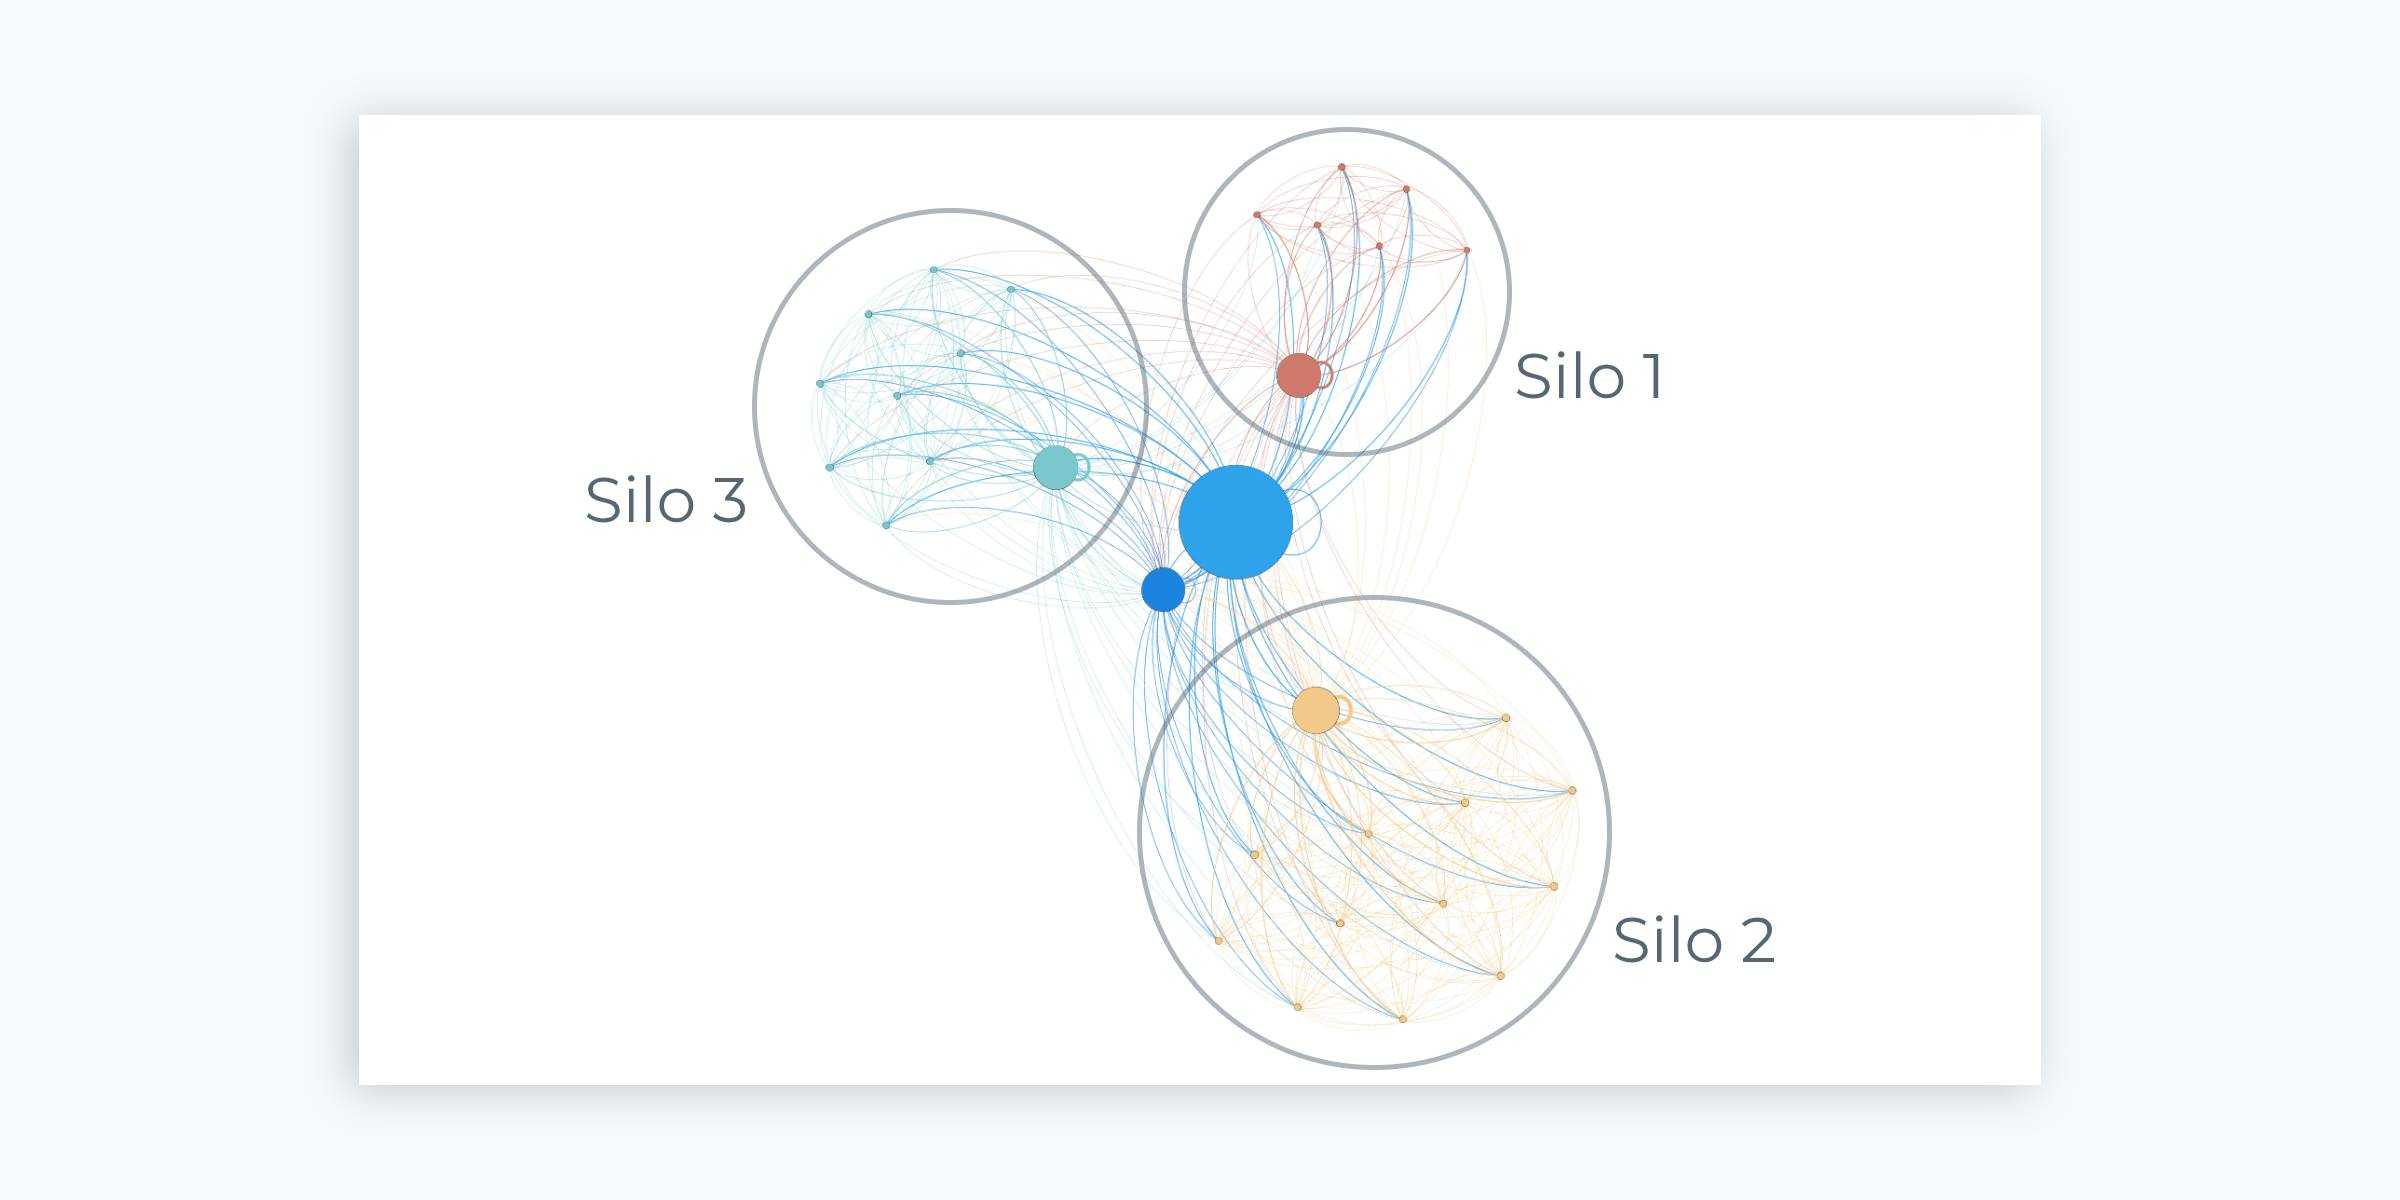 Analyse de maillage interne gephi - idéveloppement